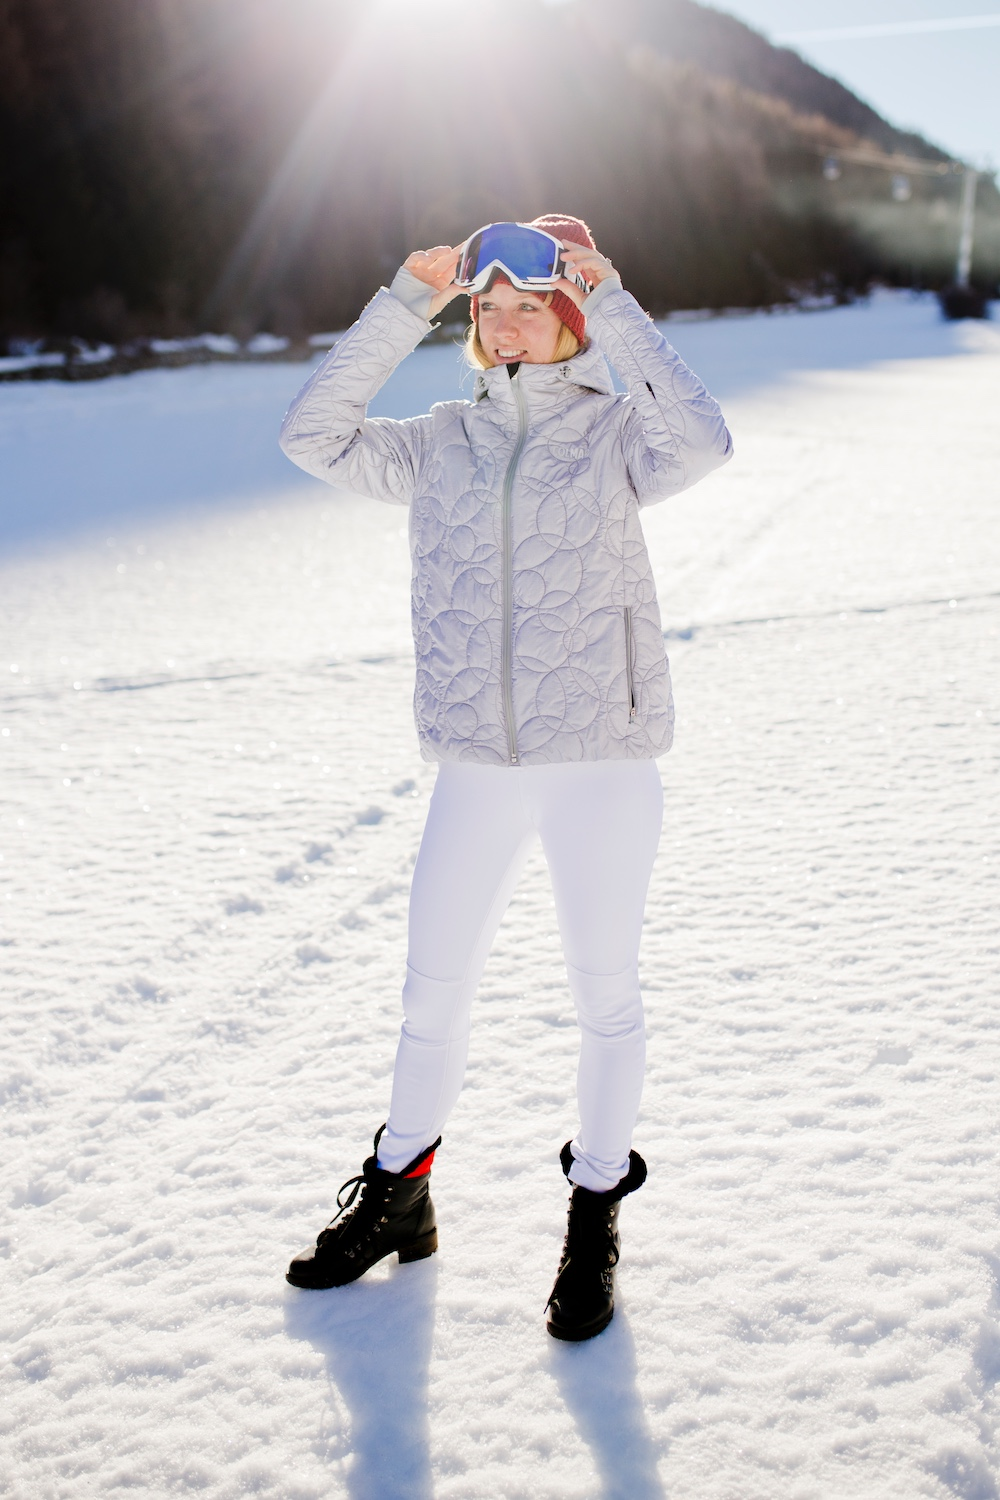 www.thegoldenbun.com | Colmar Ski Outfit - racing outfit - ski jacket silber white overall